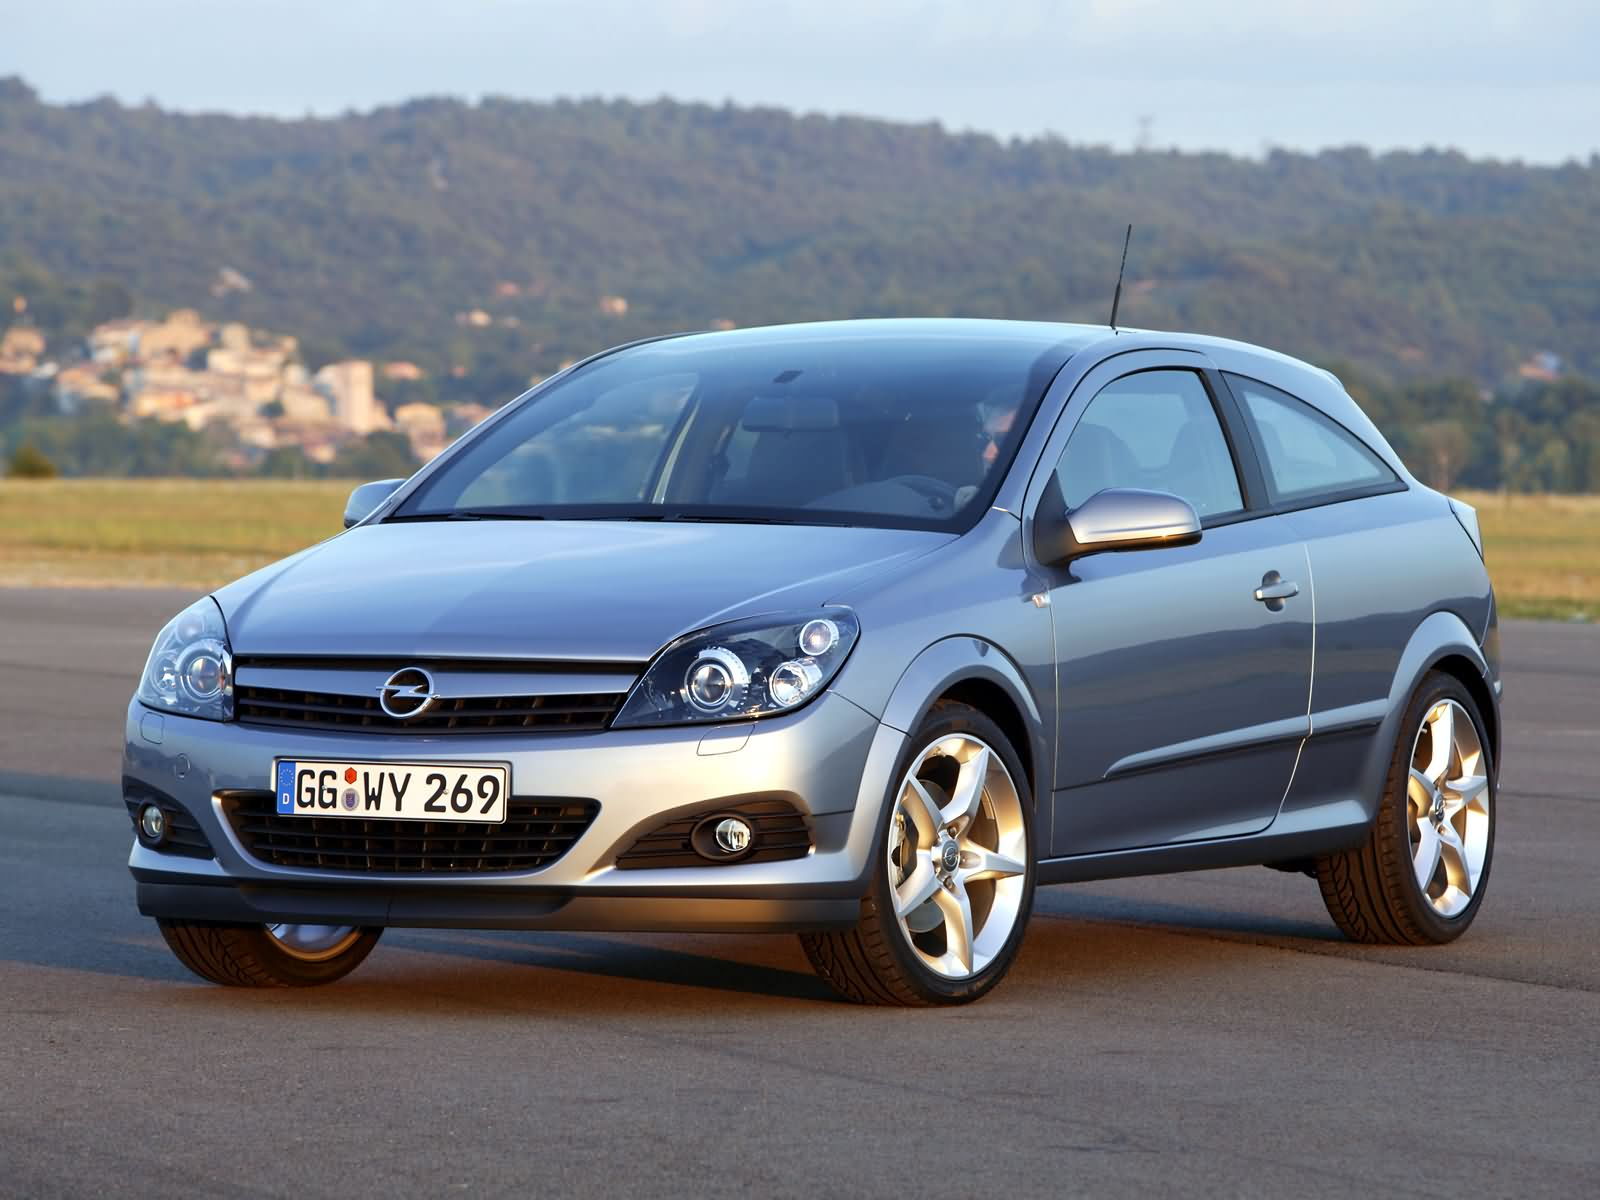 opel astra h gtc 2005 opel astra h gtc 2005 photo 07 car in pictures car photo gallery. Black Bedroom Furniture Sets. Home Design Ideas